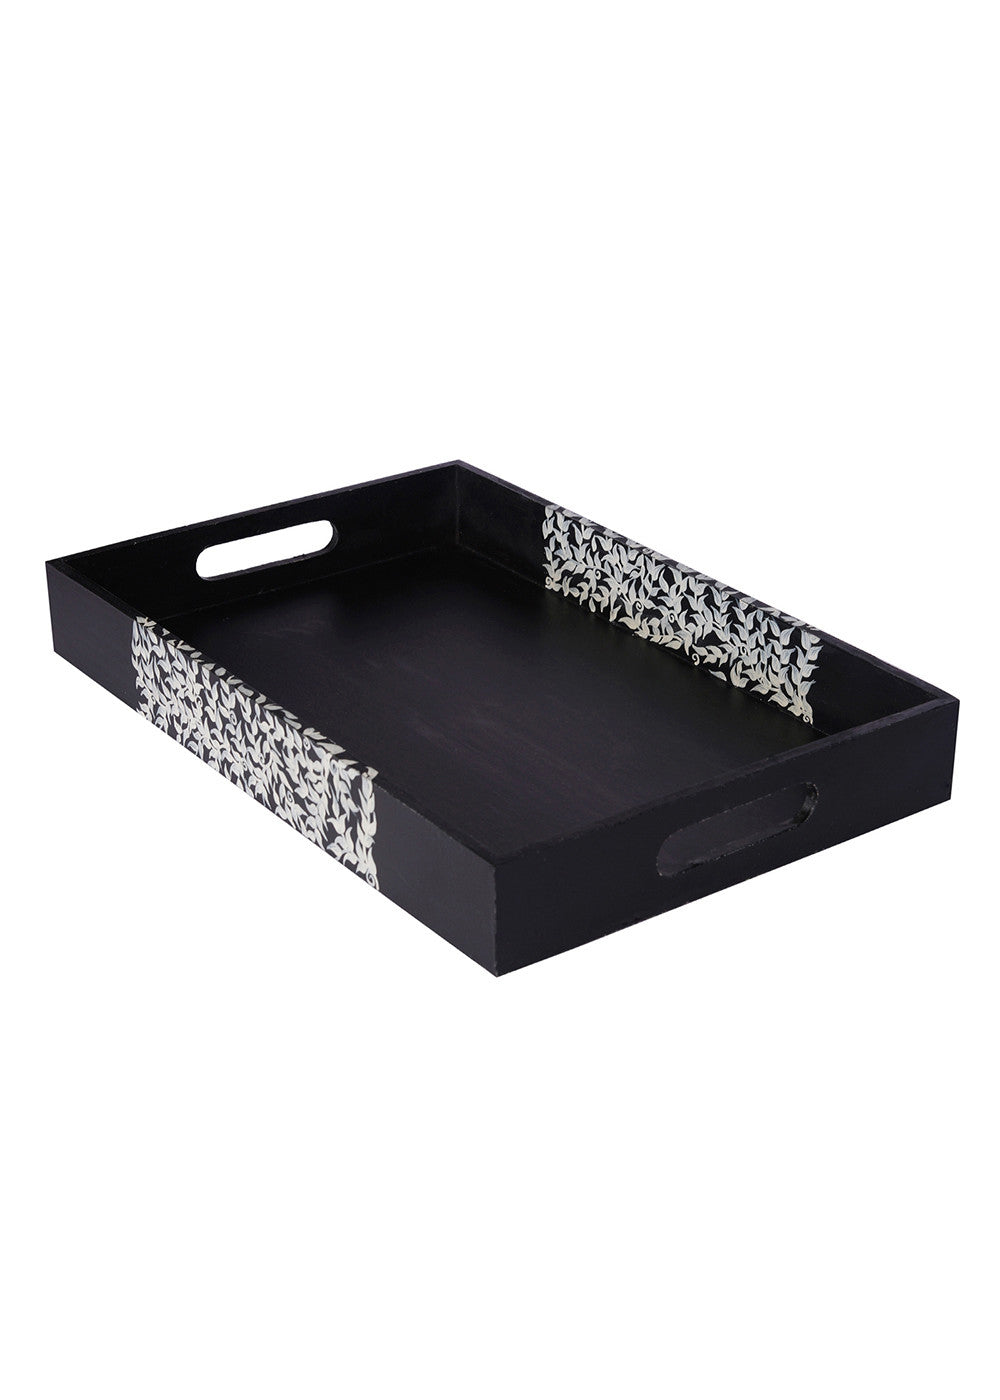 Hand-painted Black Beauty Exotic Tray - RANGRAGE